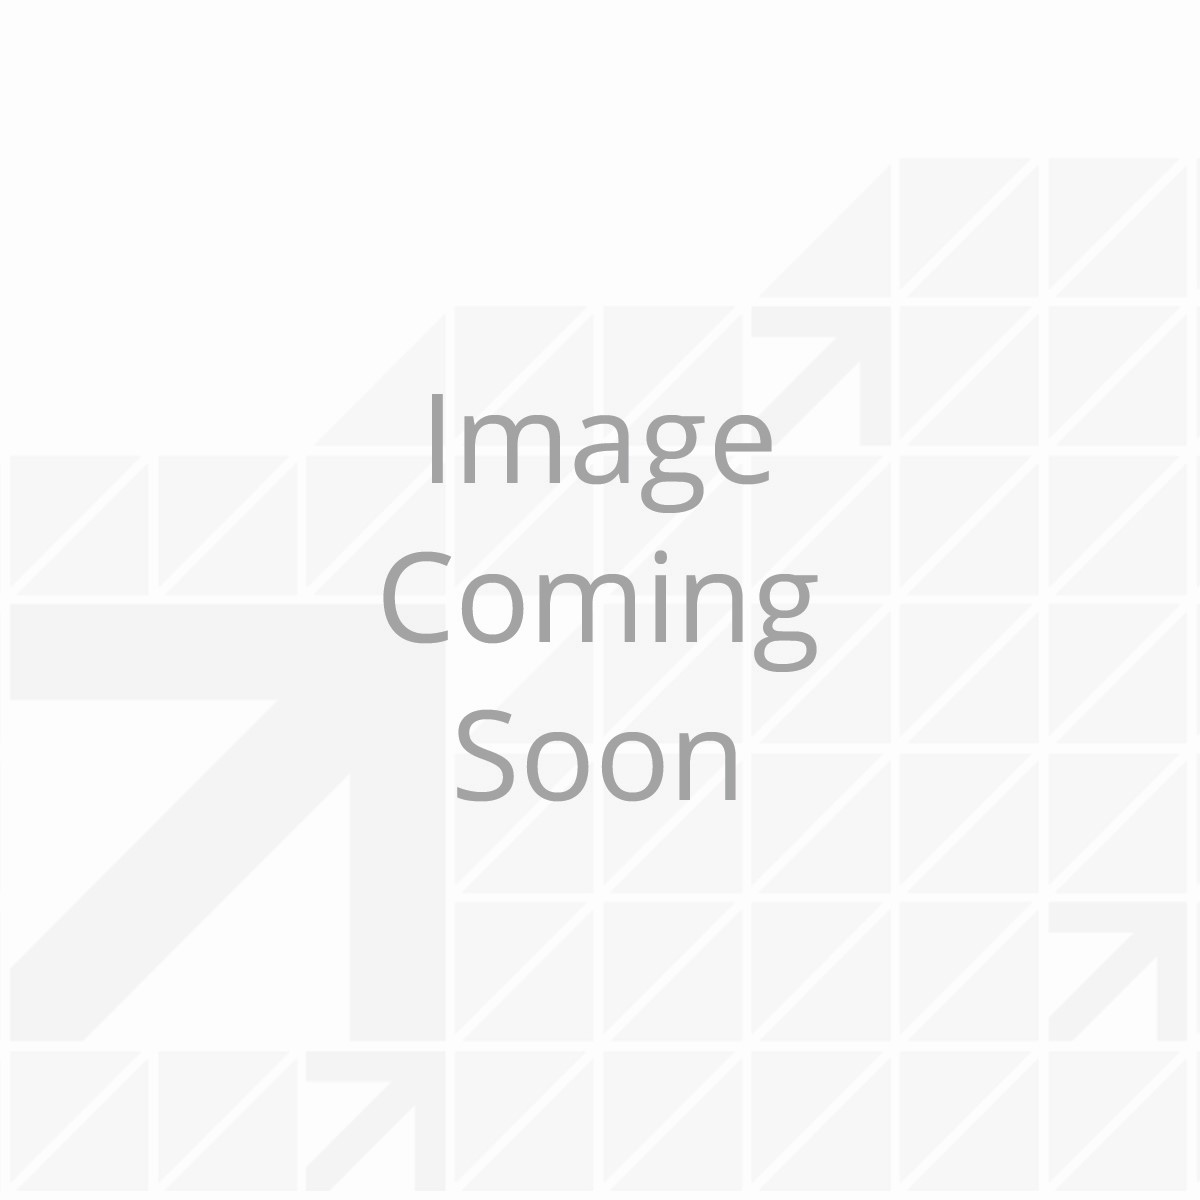 Interior Window Frame - Black